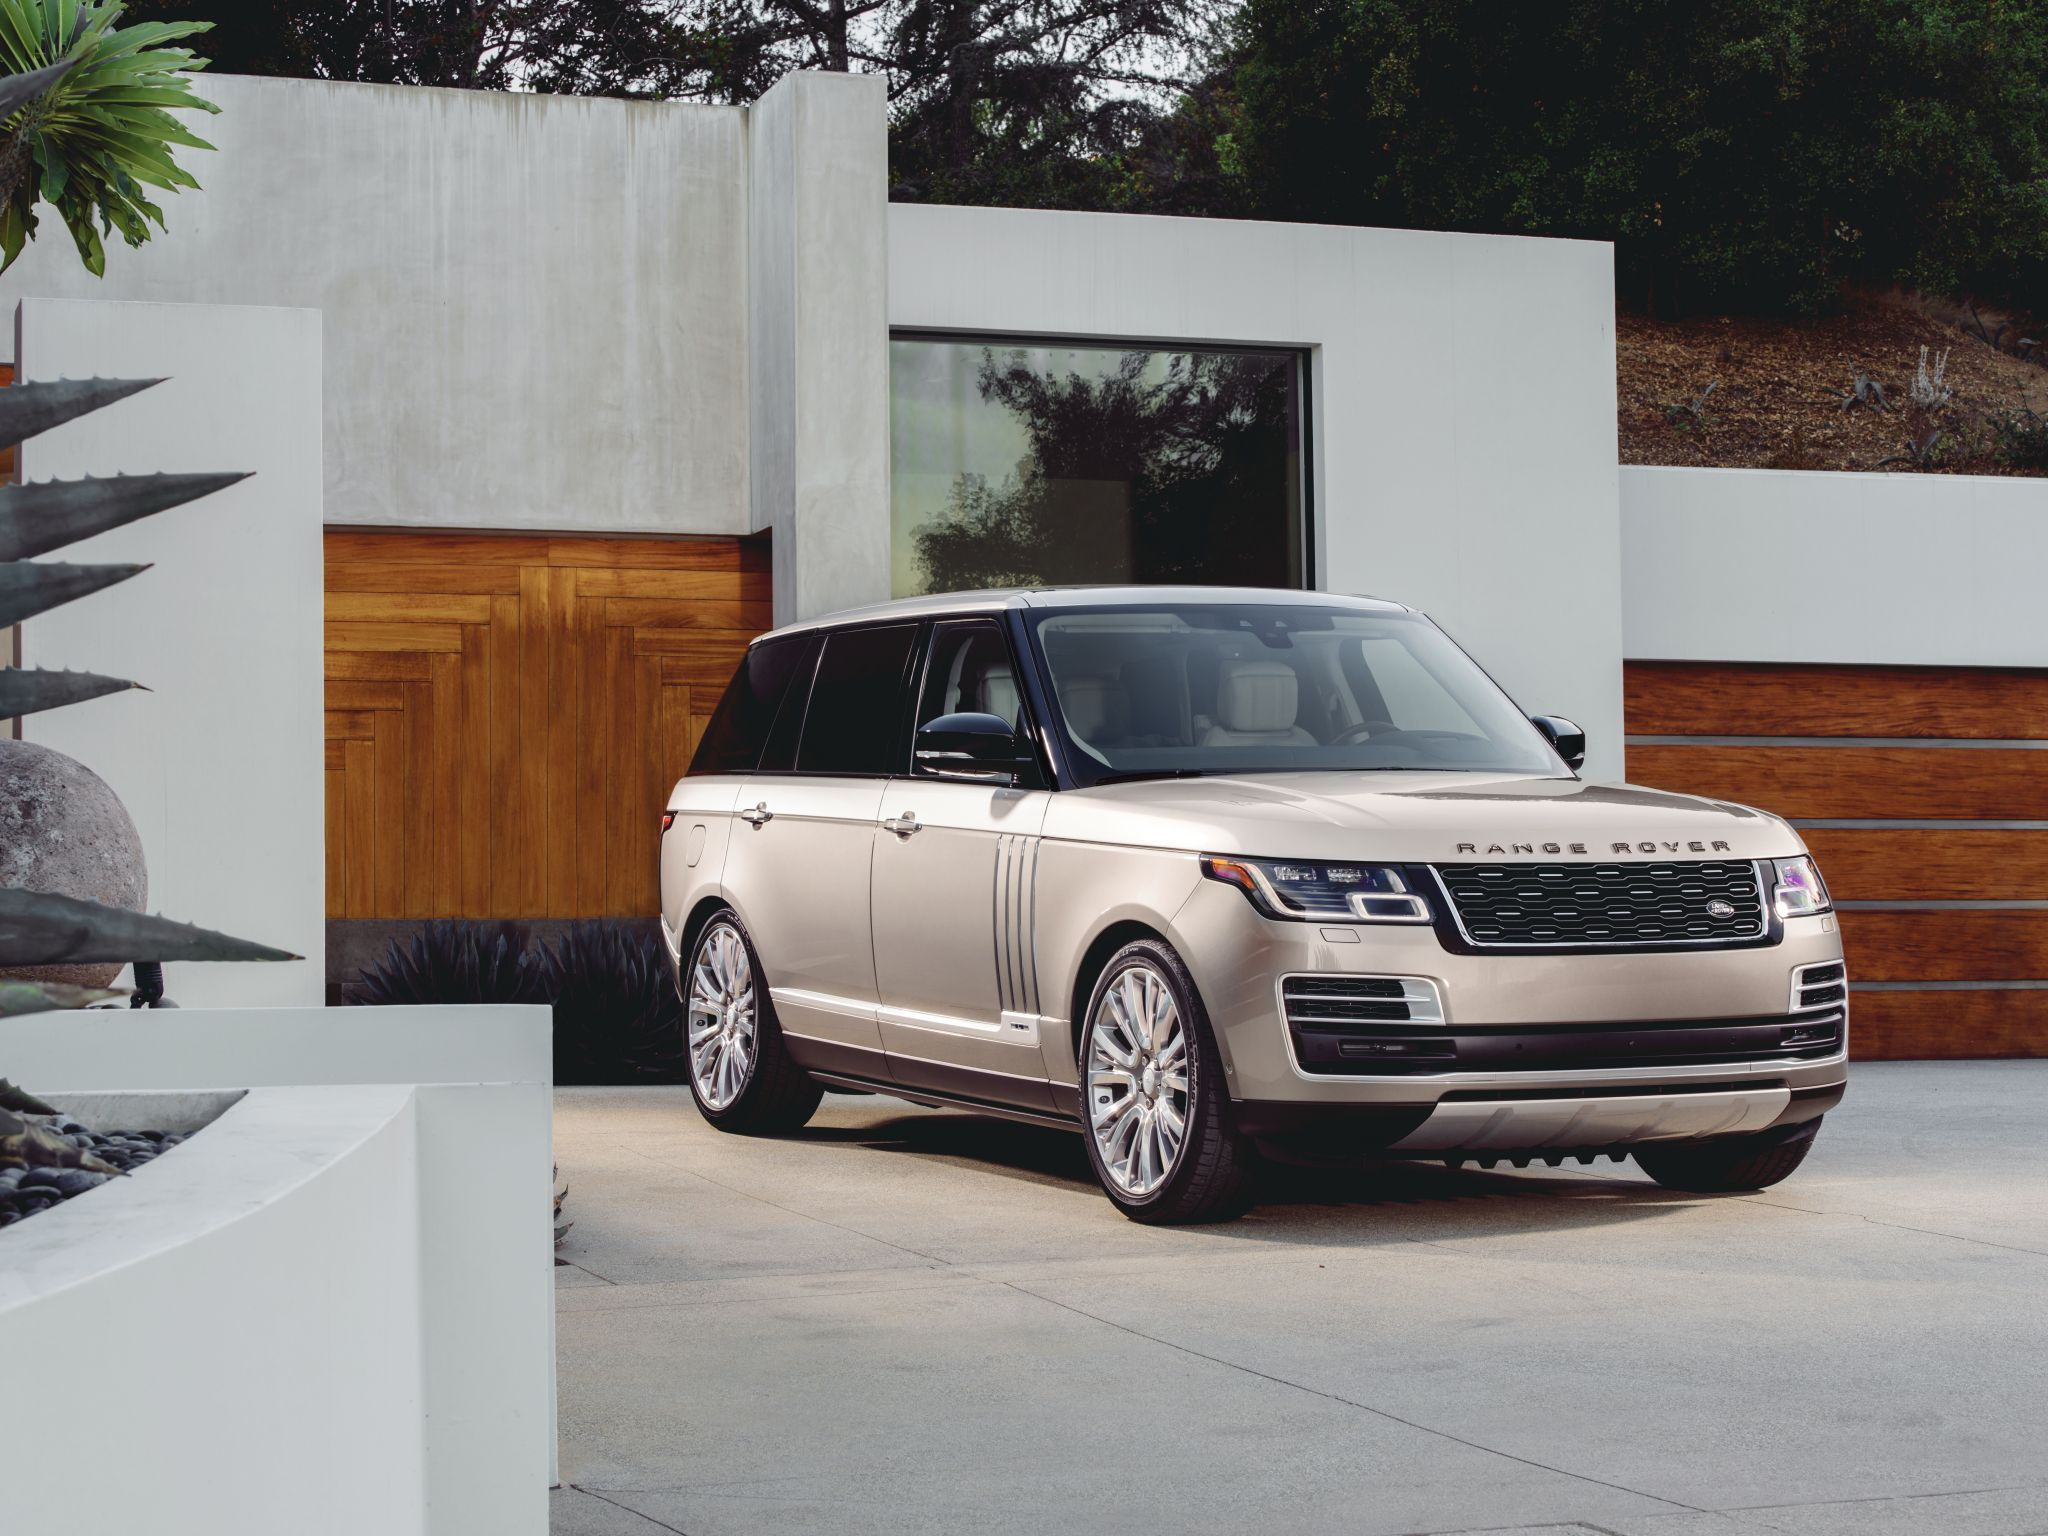 Land Rover reveals its latest model Range Rover SVAutoiography